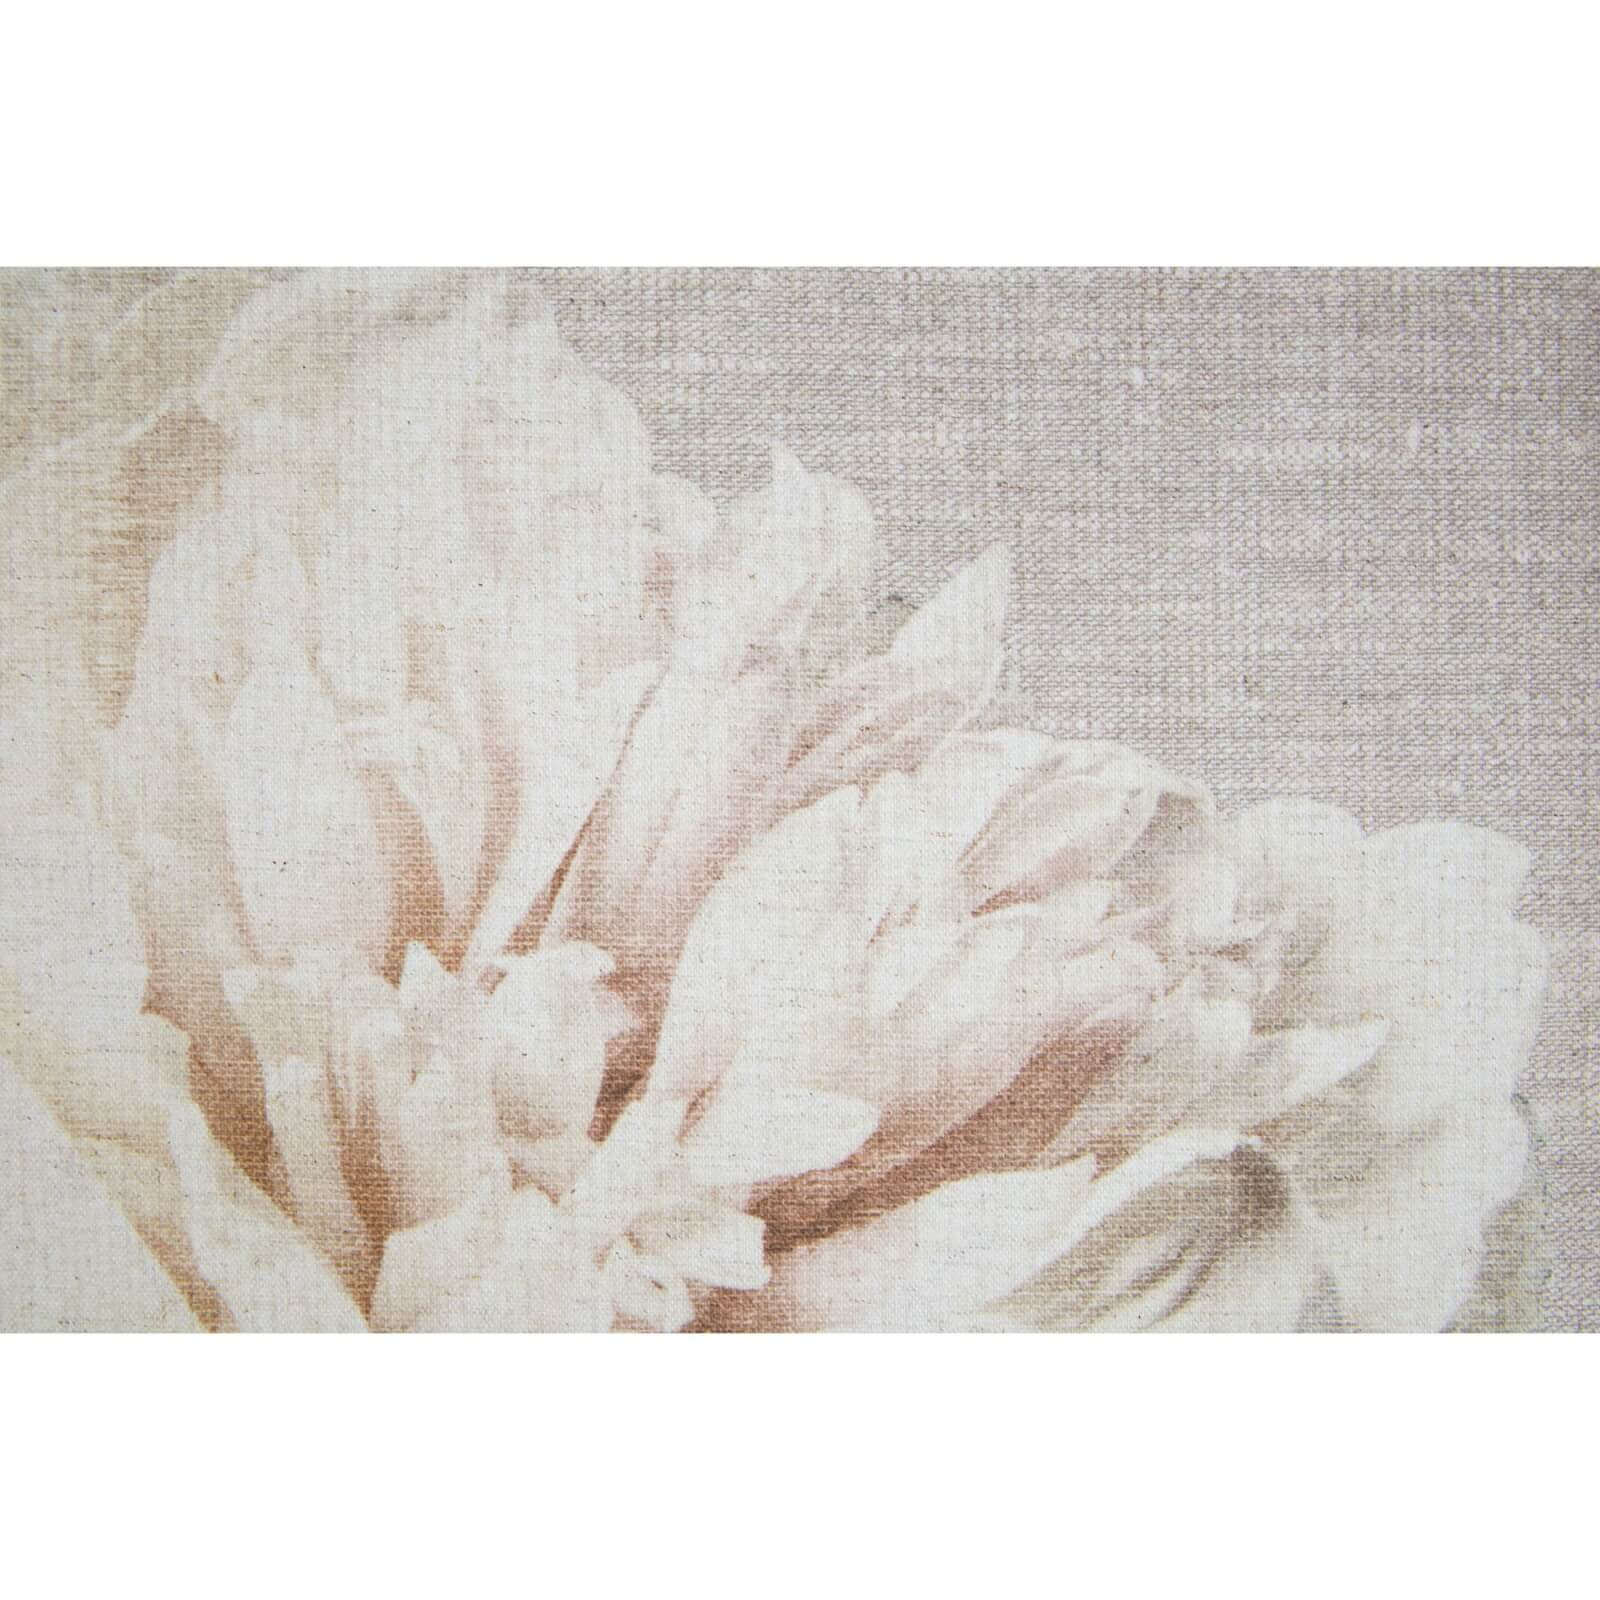 Art For The Home Cream Petals Fabric Canvas Wall Art